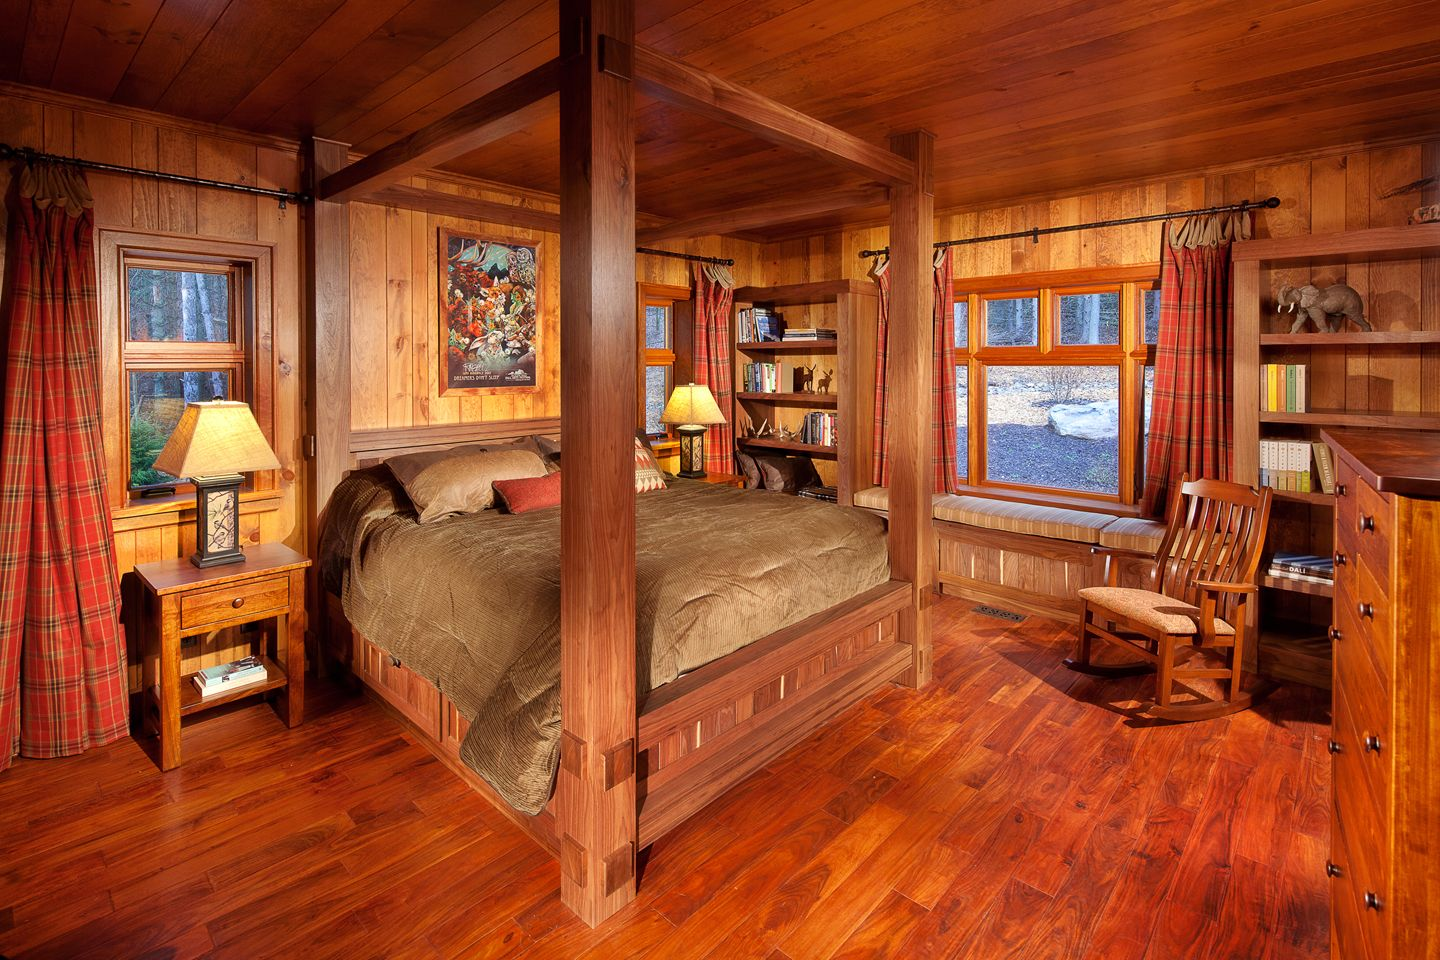 Old Log Cabin Porch Ceiling Master Bedroom Sampsonguesthouse Cabin Ideas Pinterest Cabin